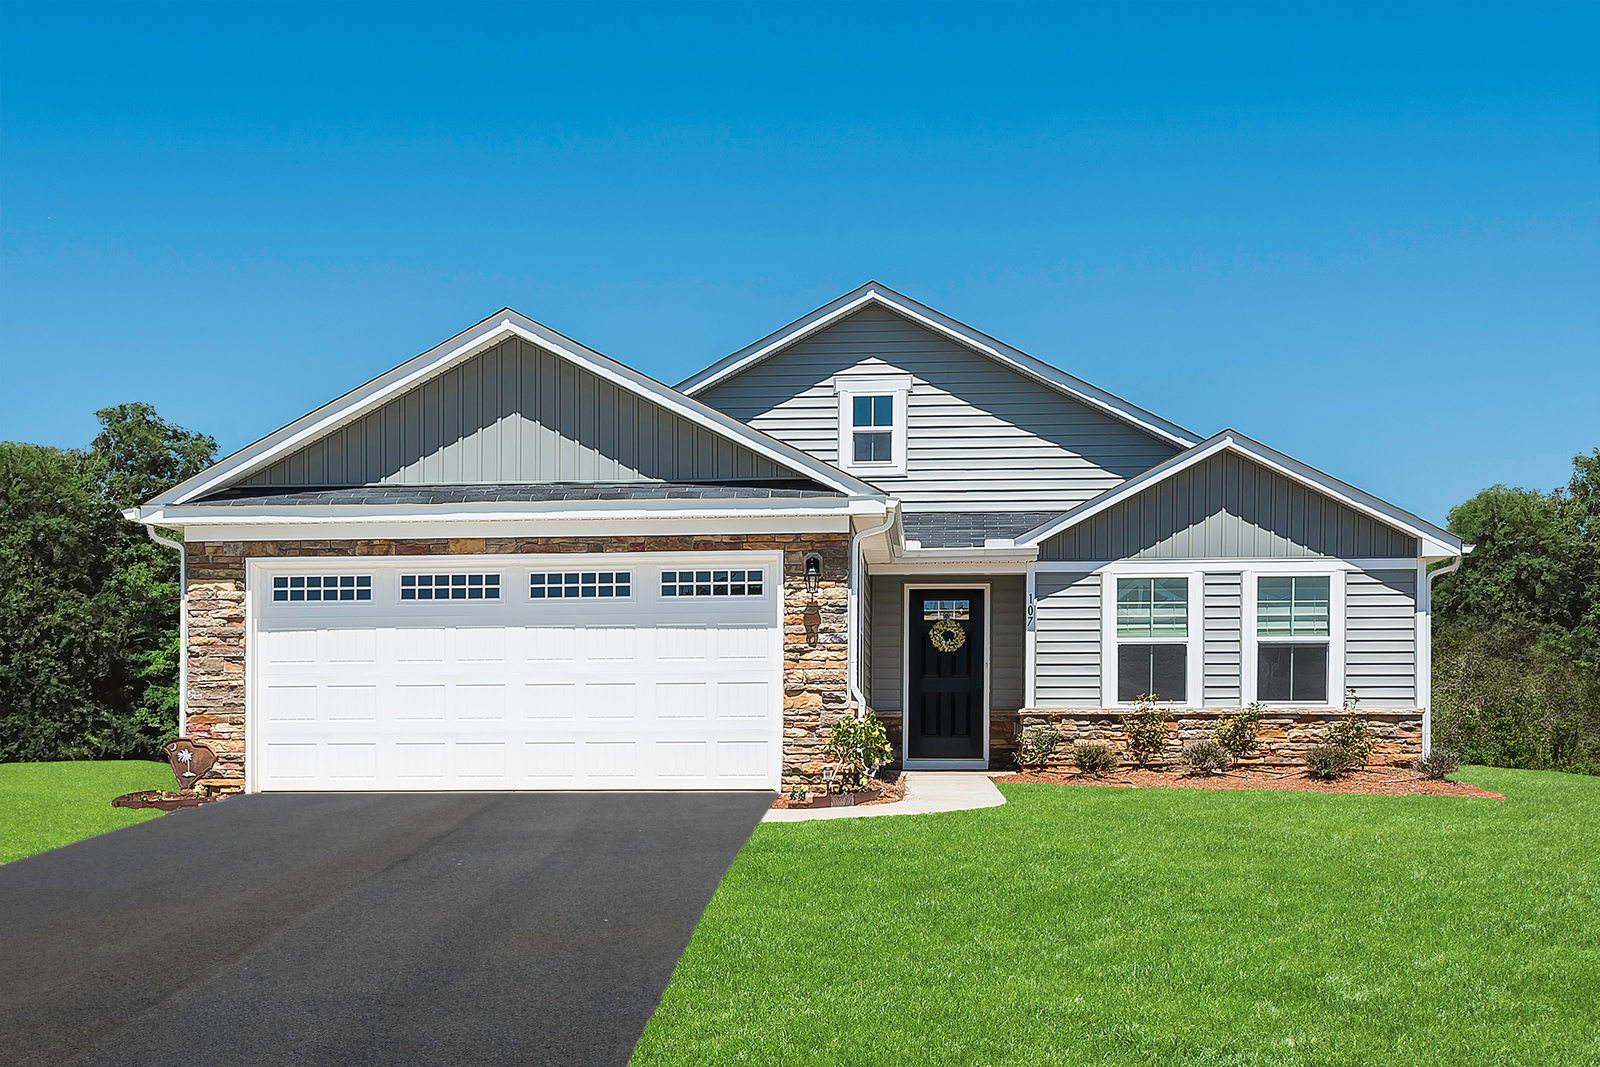 New Homes for sale at Chandler's Glen Ranch Homes in Bunker Hill, WV